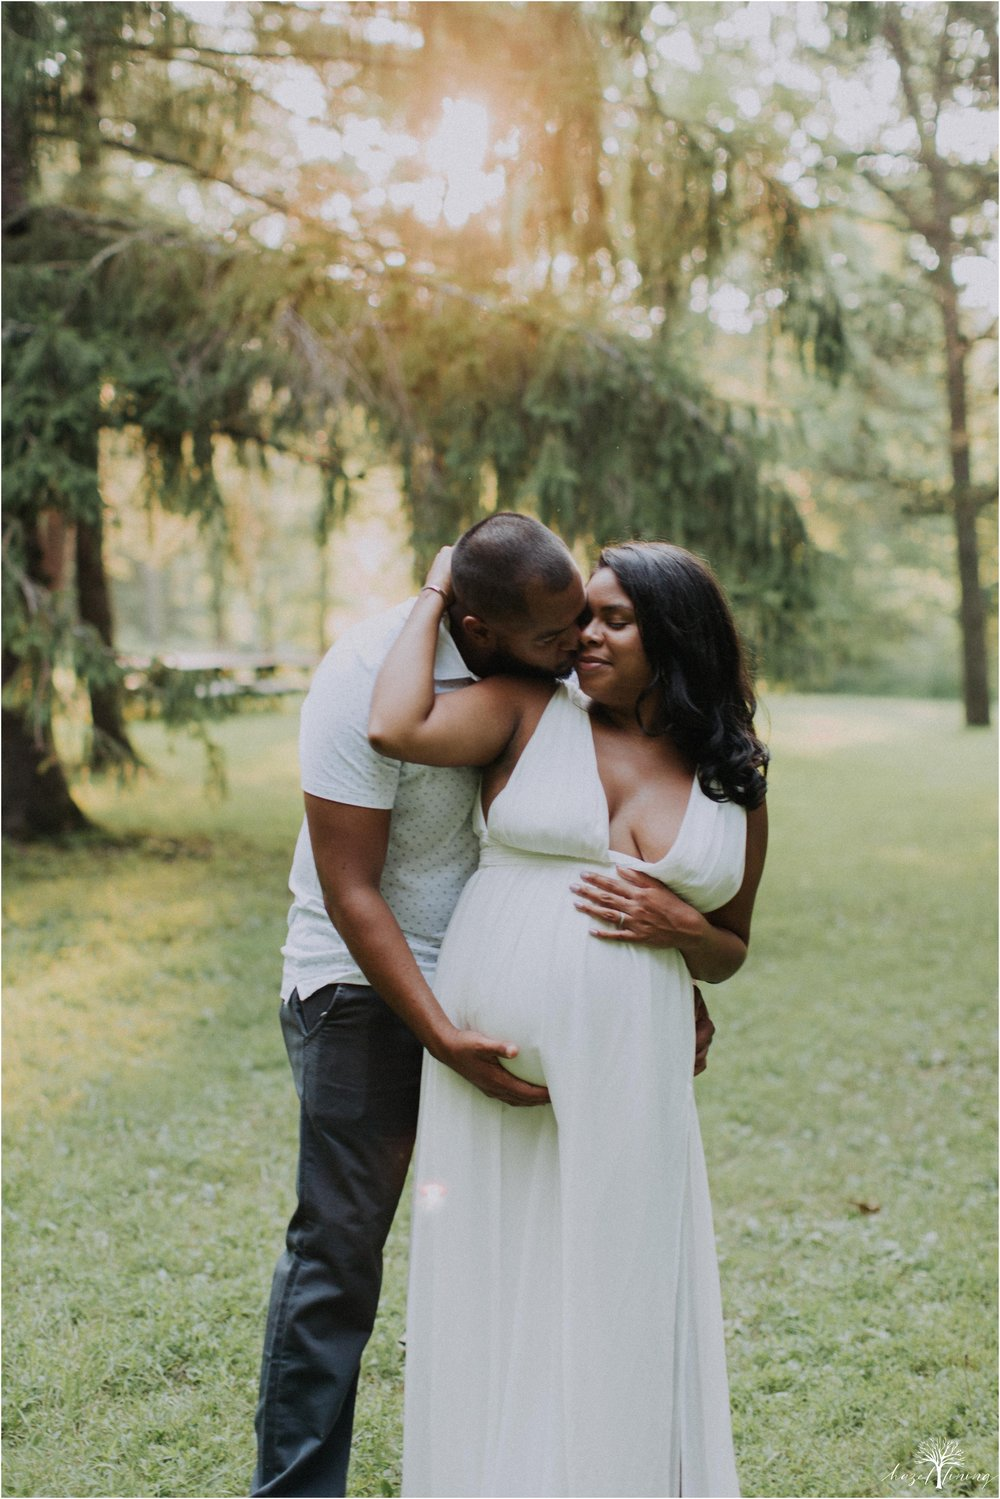 leyka-kristofer-chaparro-ralph-stover-state-park-summer-golden-hour-stream-maternity-session-hazel-lining-travel-wedding-elopement-photography_0033.jpg